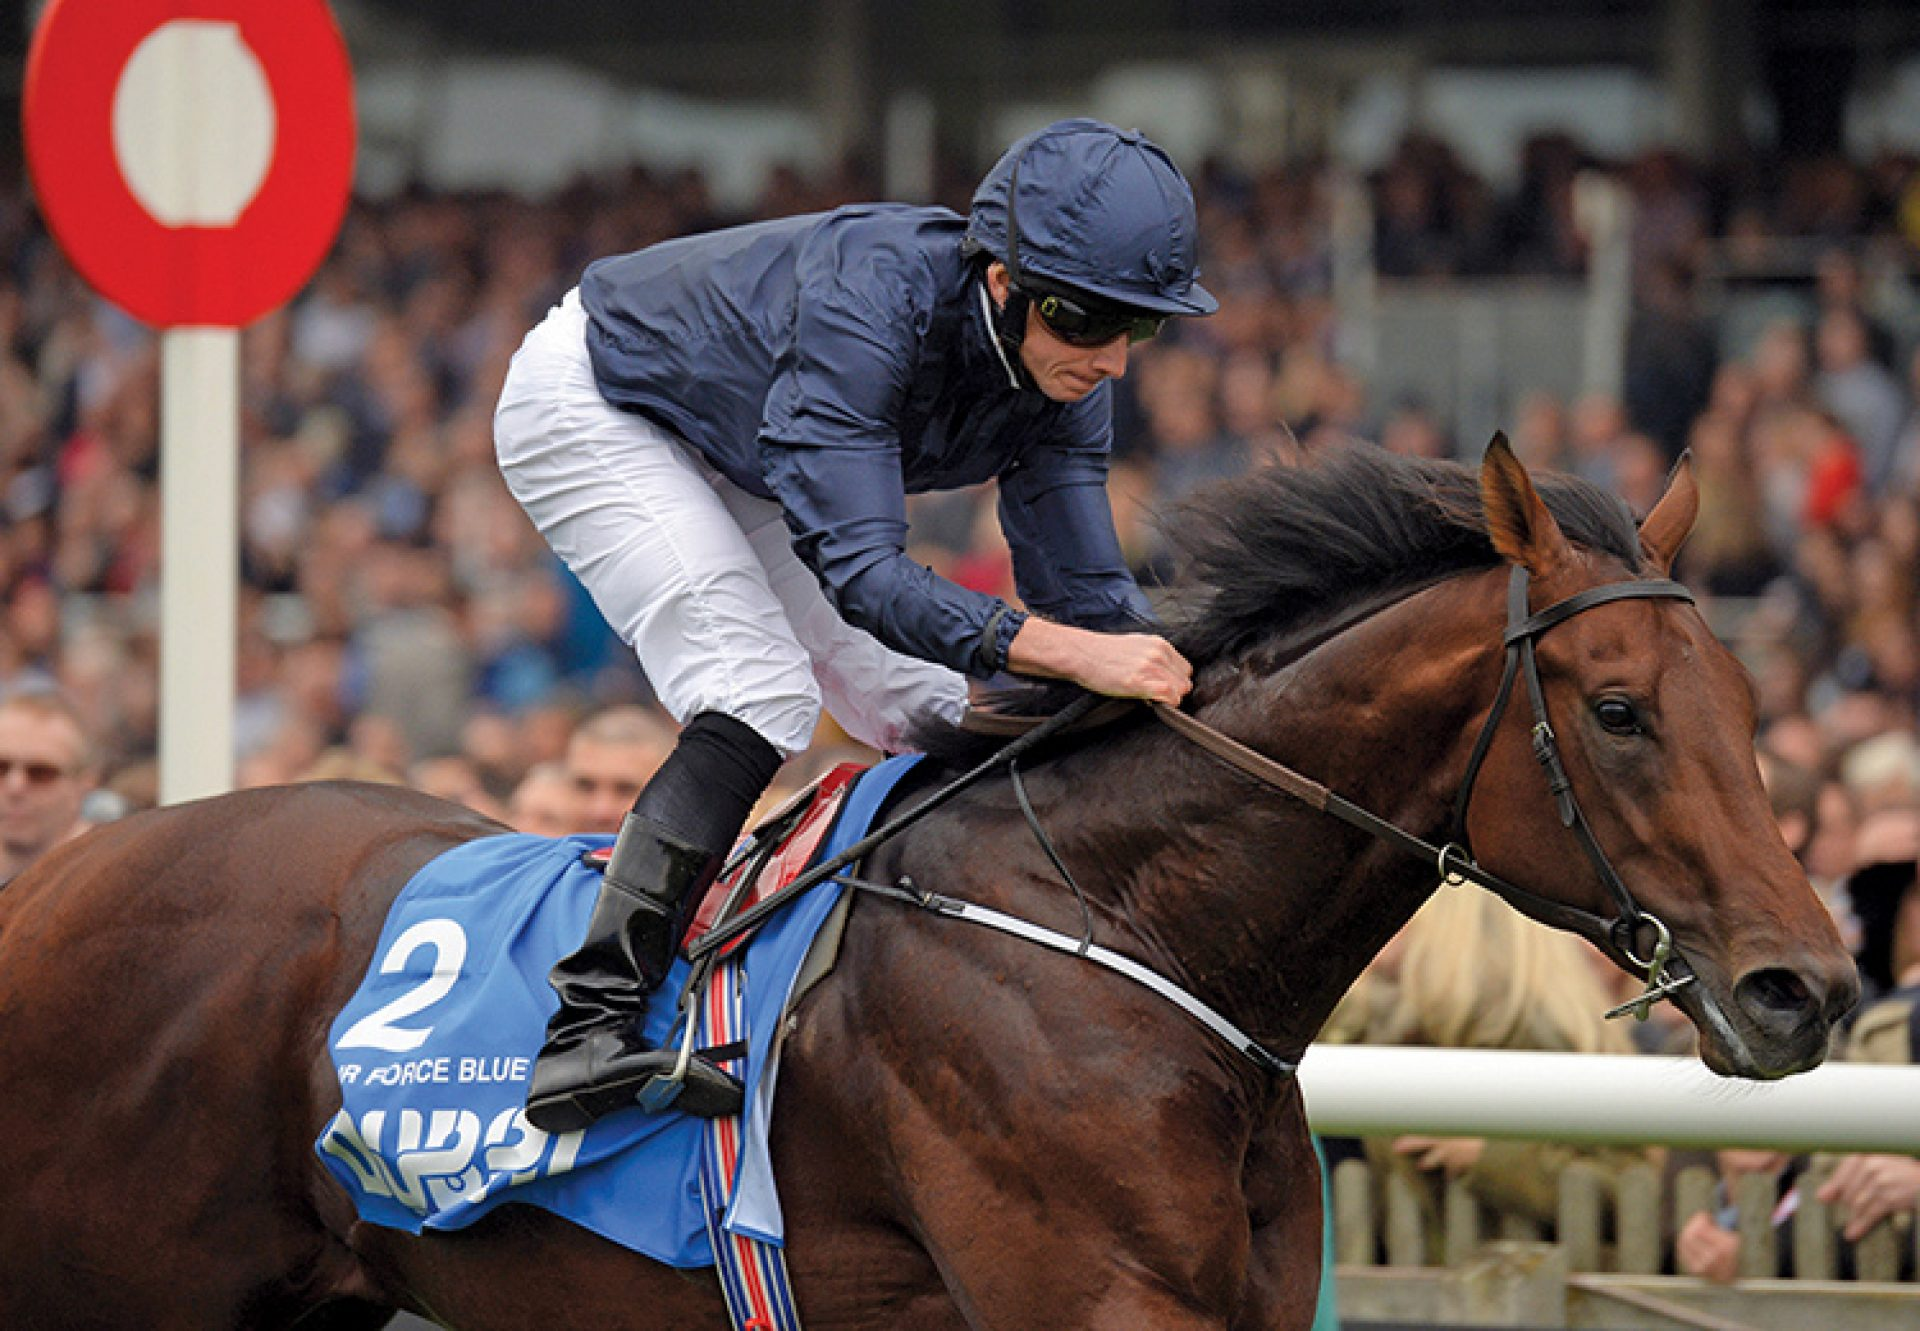 Air Force Blue wining the Dewhurst Stakes at Newmarket